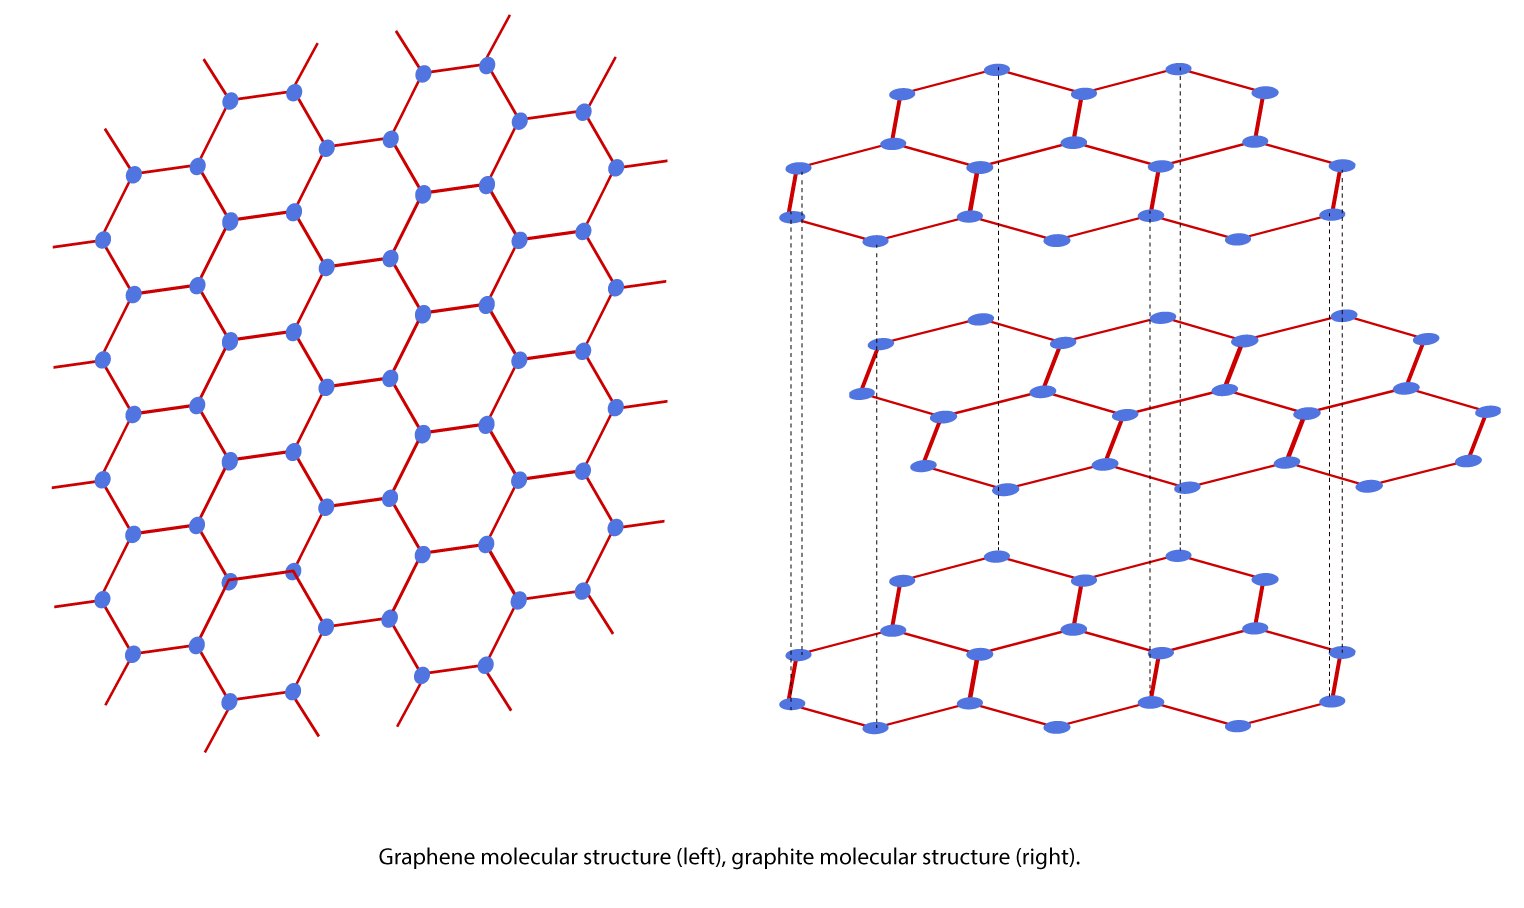 Figure 1. Graphene molecular structure (left), graphite molecular structure (right).